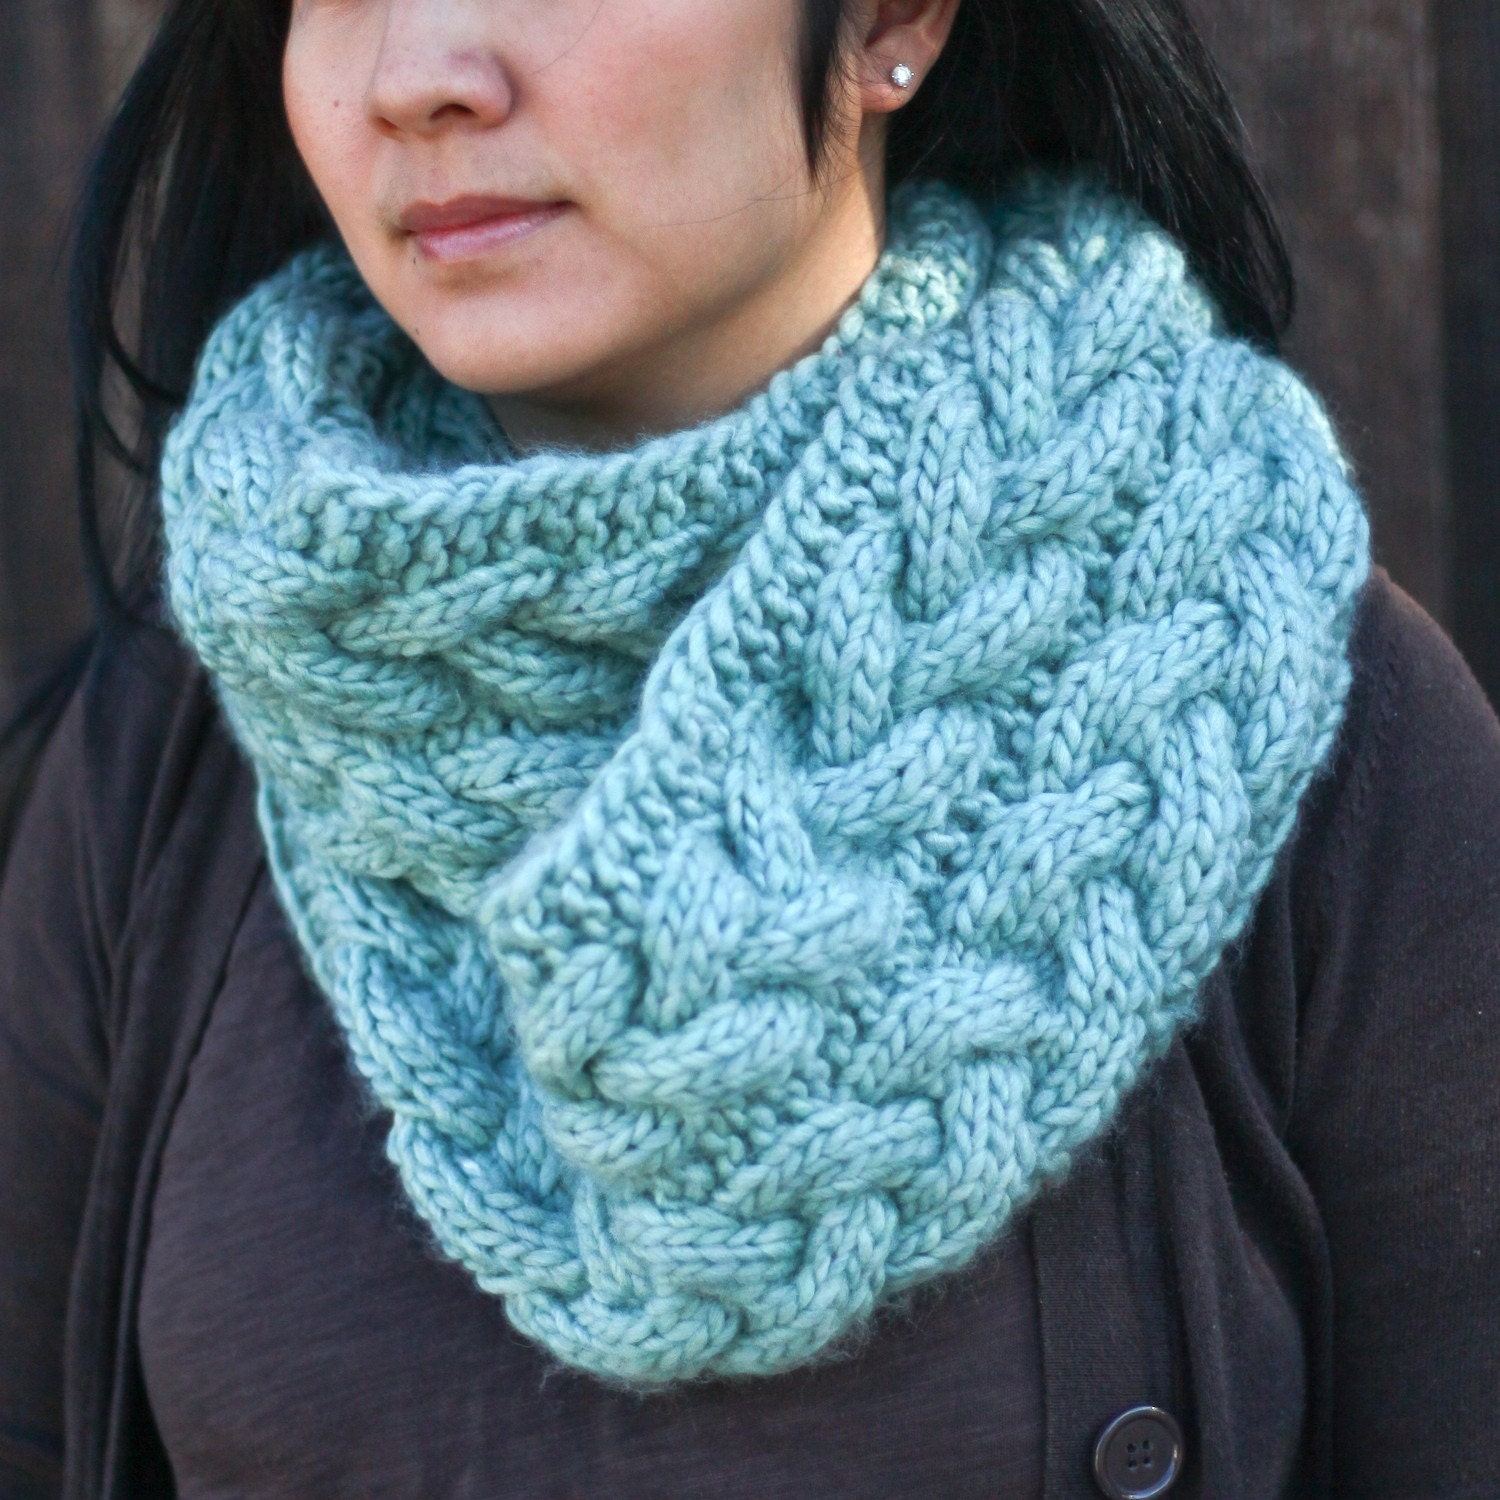 Cable Knit Infinity Scarf Pattern : Items similar to Cable Knit Infinity Scarf - Baby Blue on Etsy